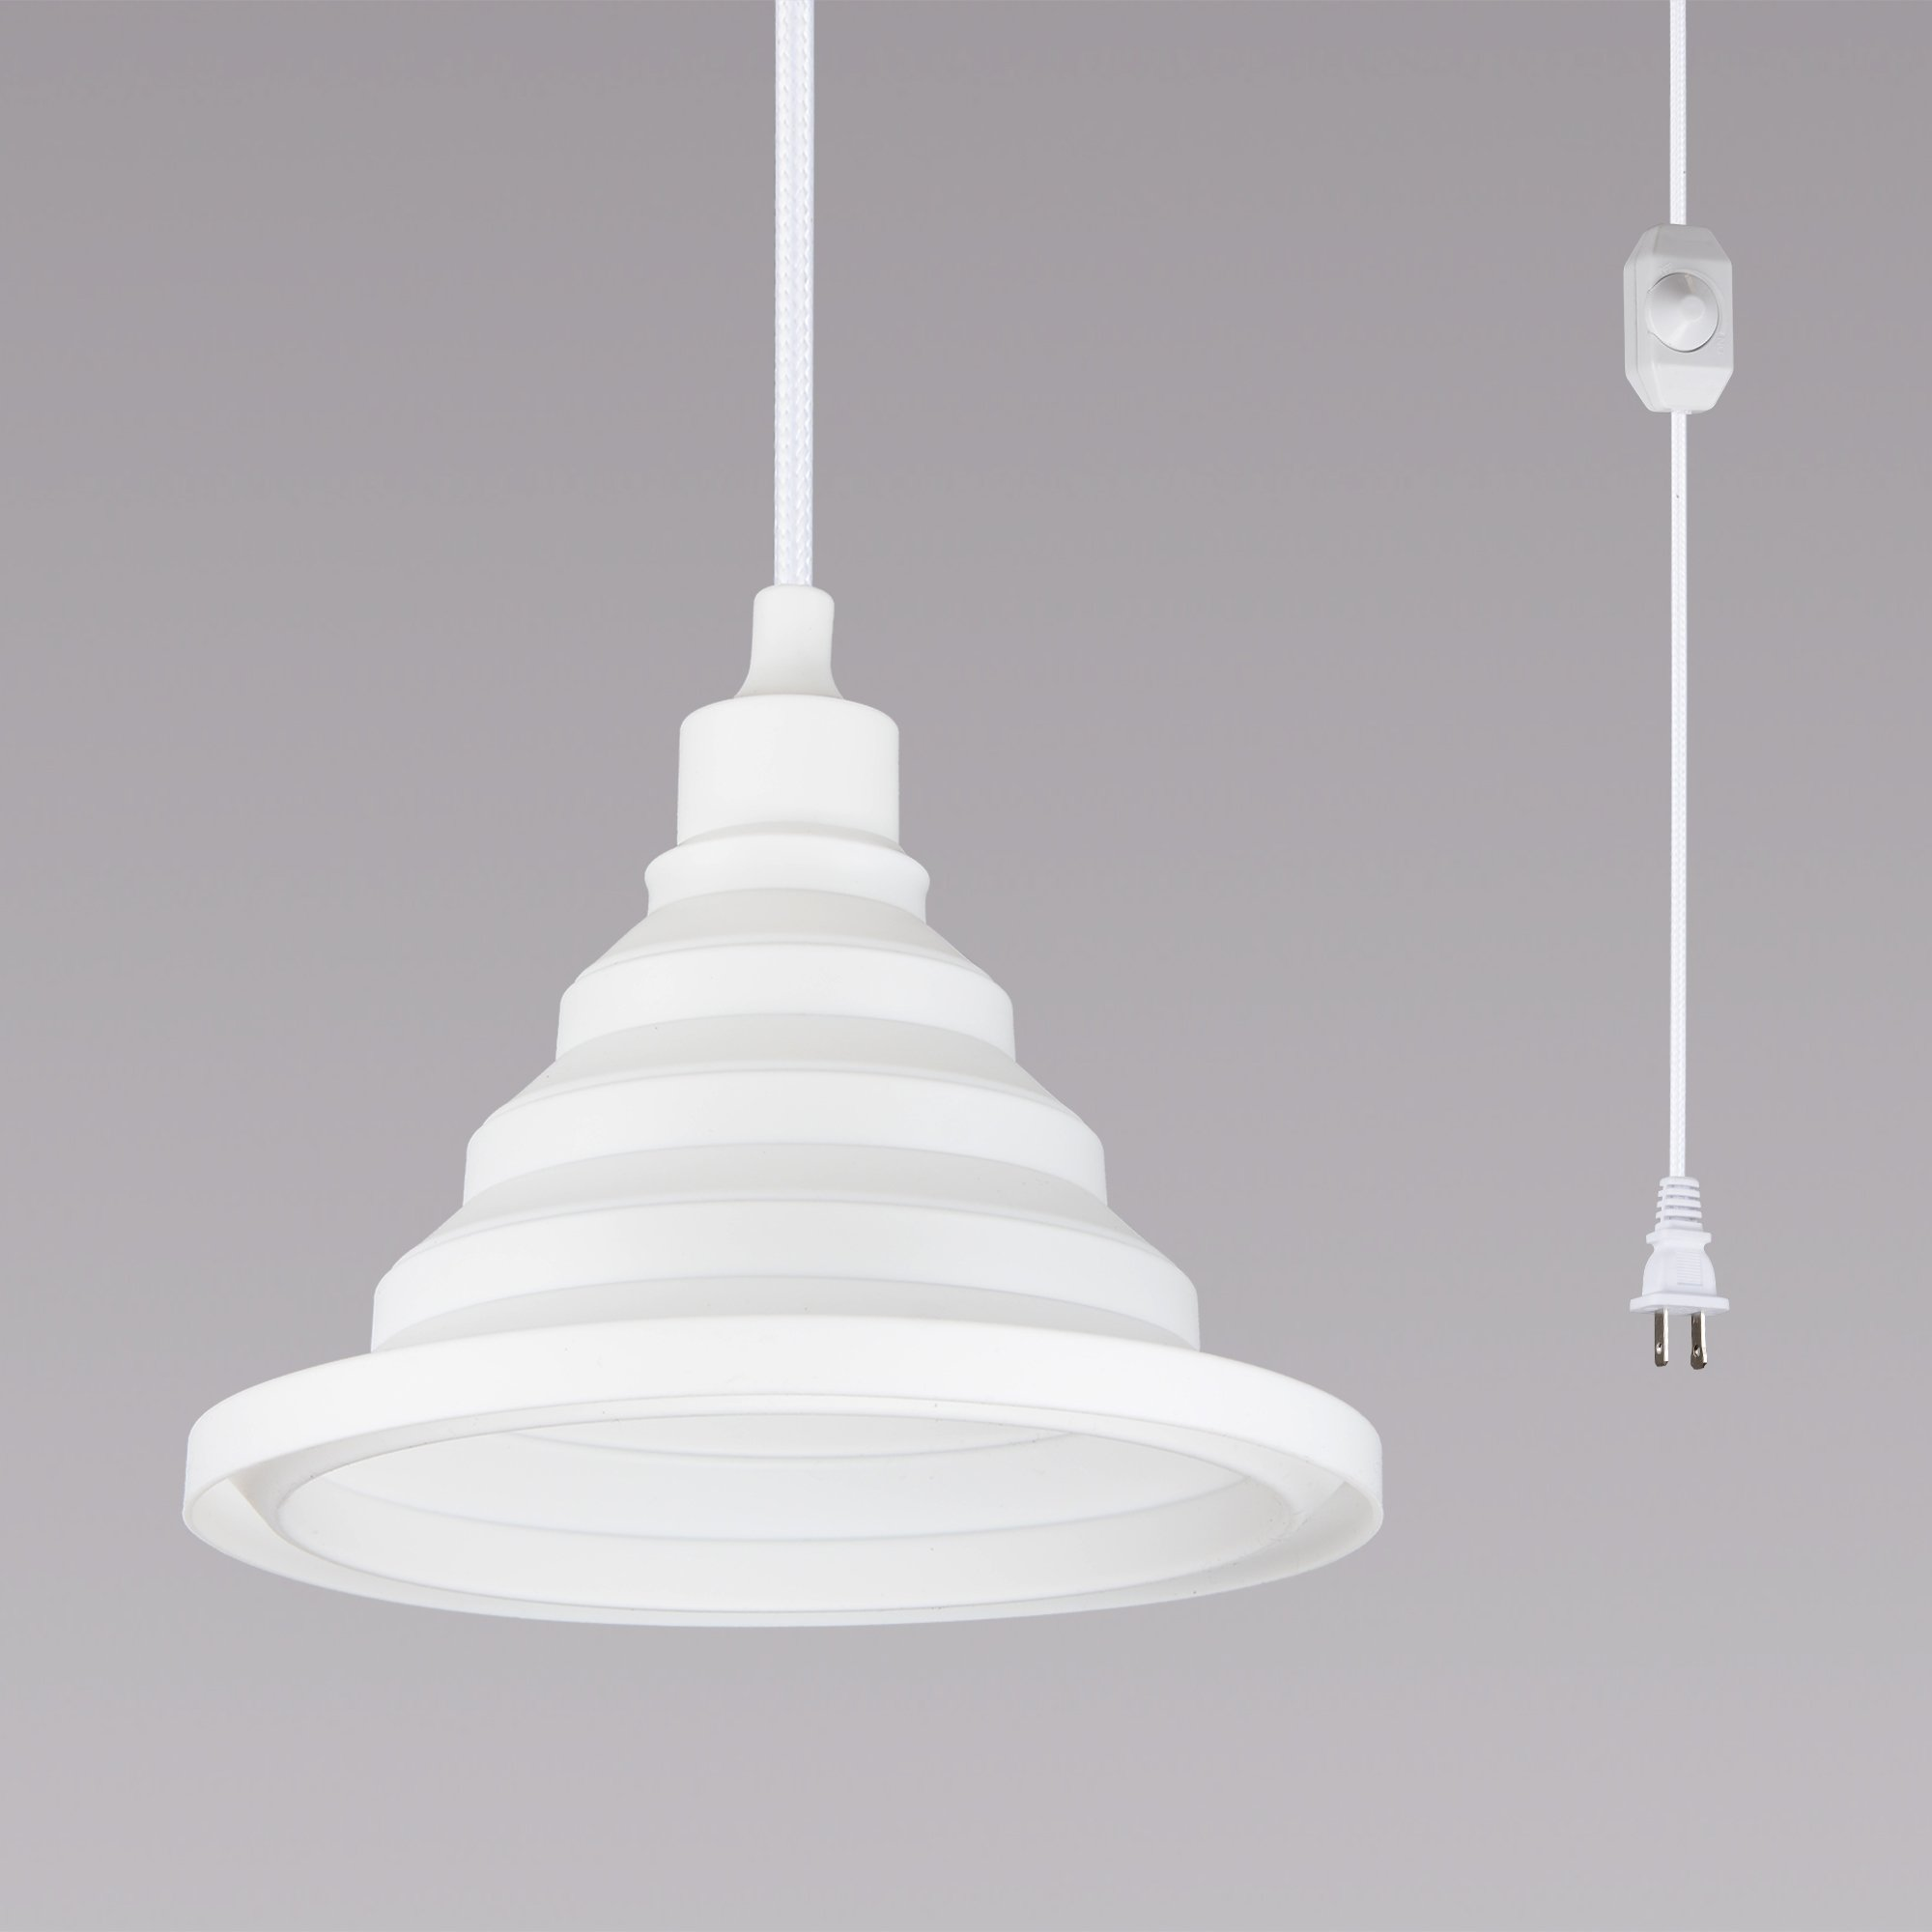 Plug-in Ceiling Pendant Lights with Foldable Silicone Lampshade and 15 Ft Cord and Dimmer On/Off Switch (White)